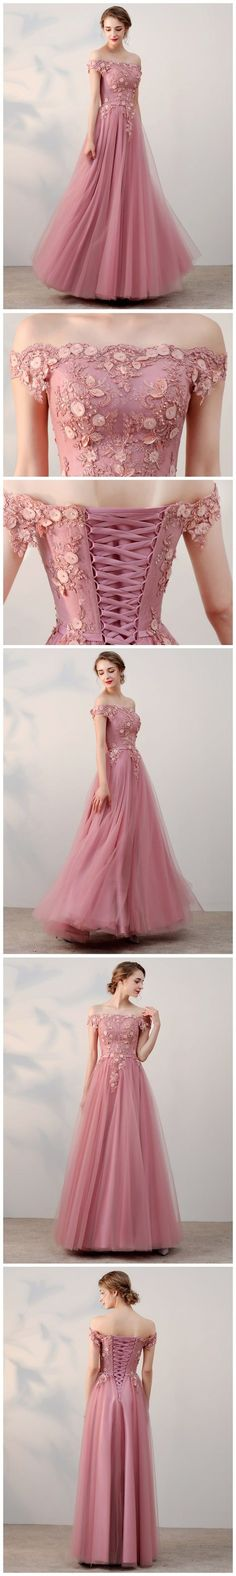 CHIC A-LINE OFF-THE-SHOULDER PINK APPLIQUE TULLE MODEST LONG PROM DRESS EVENING DRESS AM230